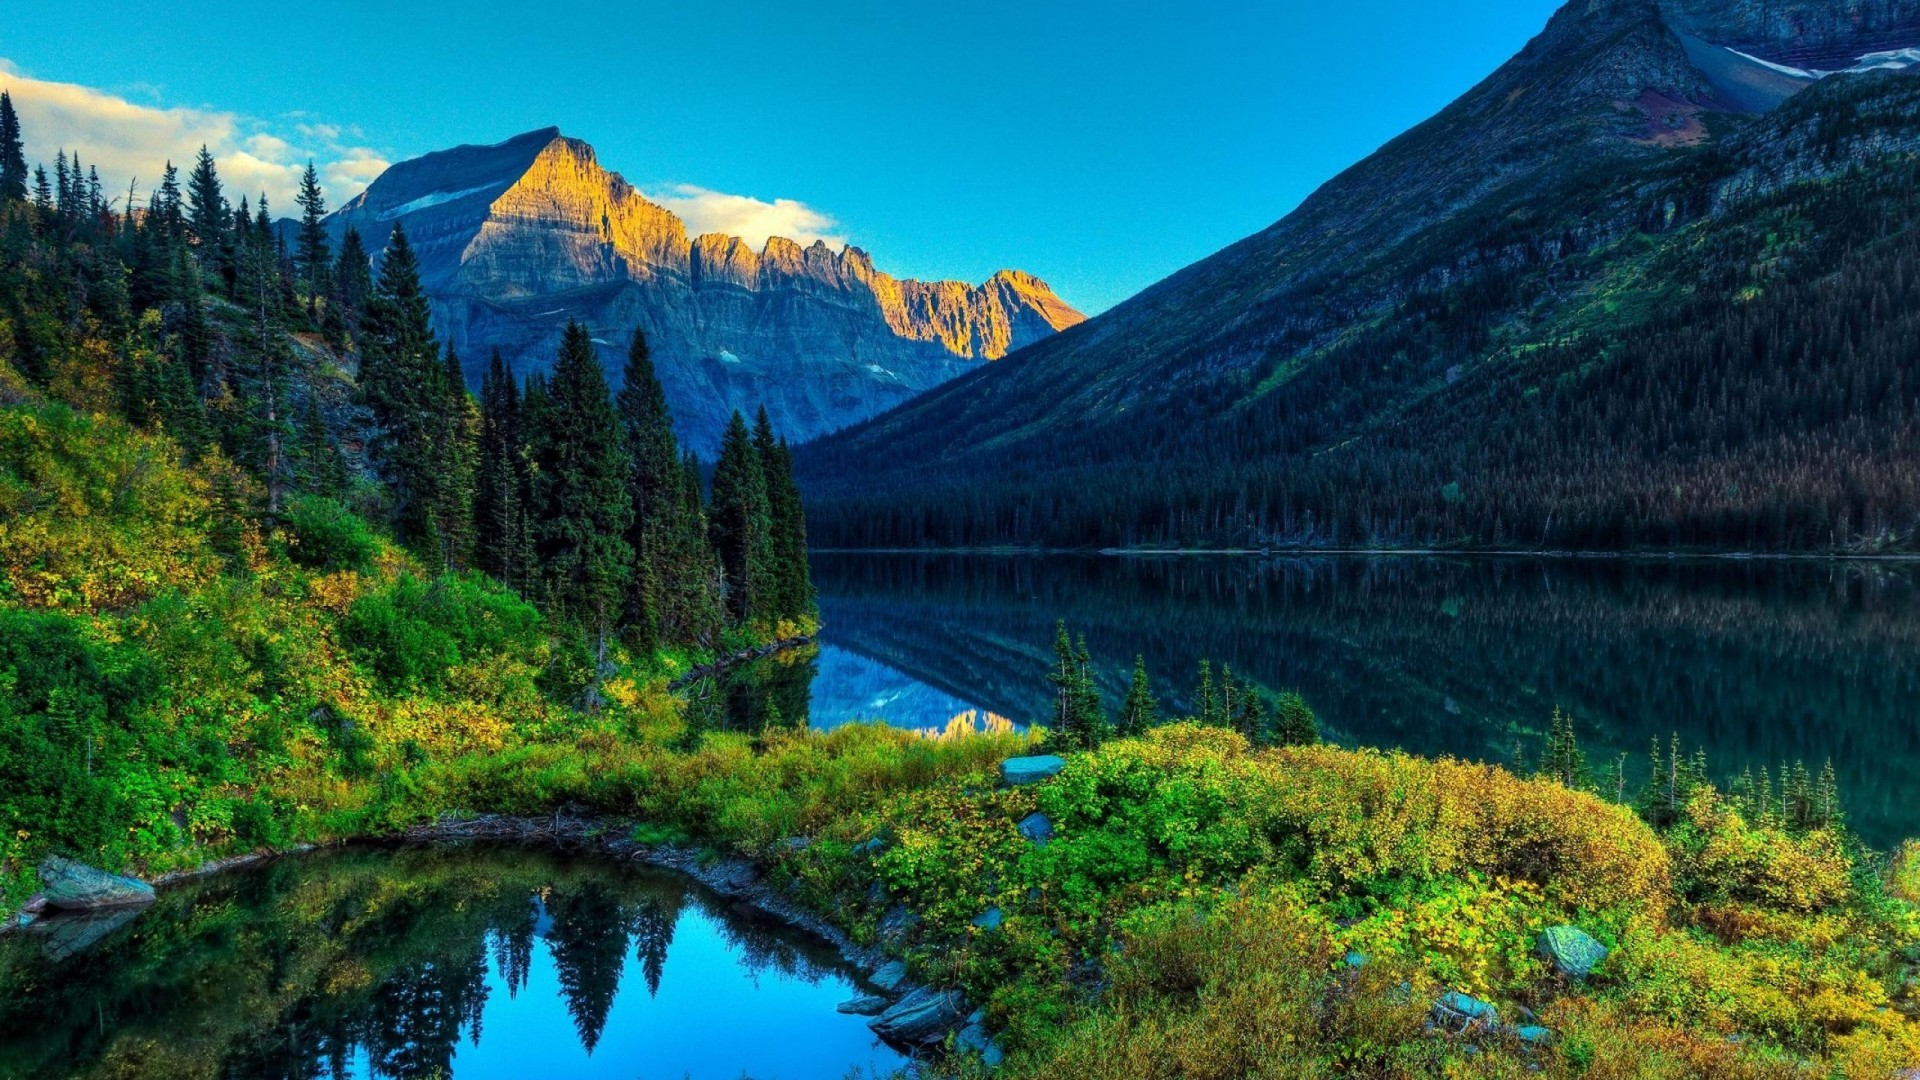 Nature Picture Wallpapers In High Quality Wallpapers Hd 1920x1080